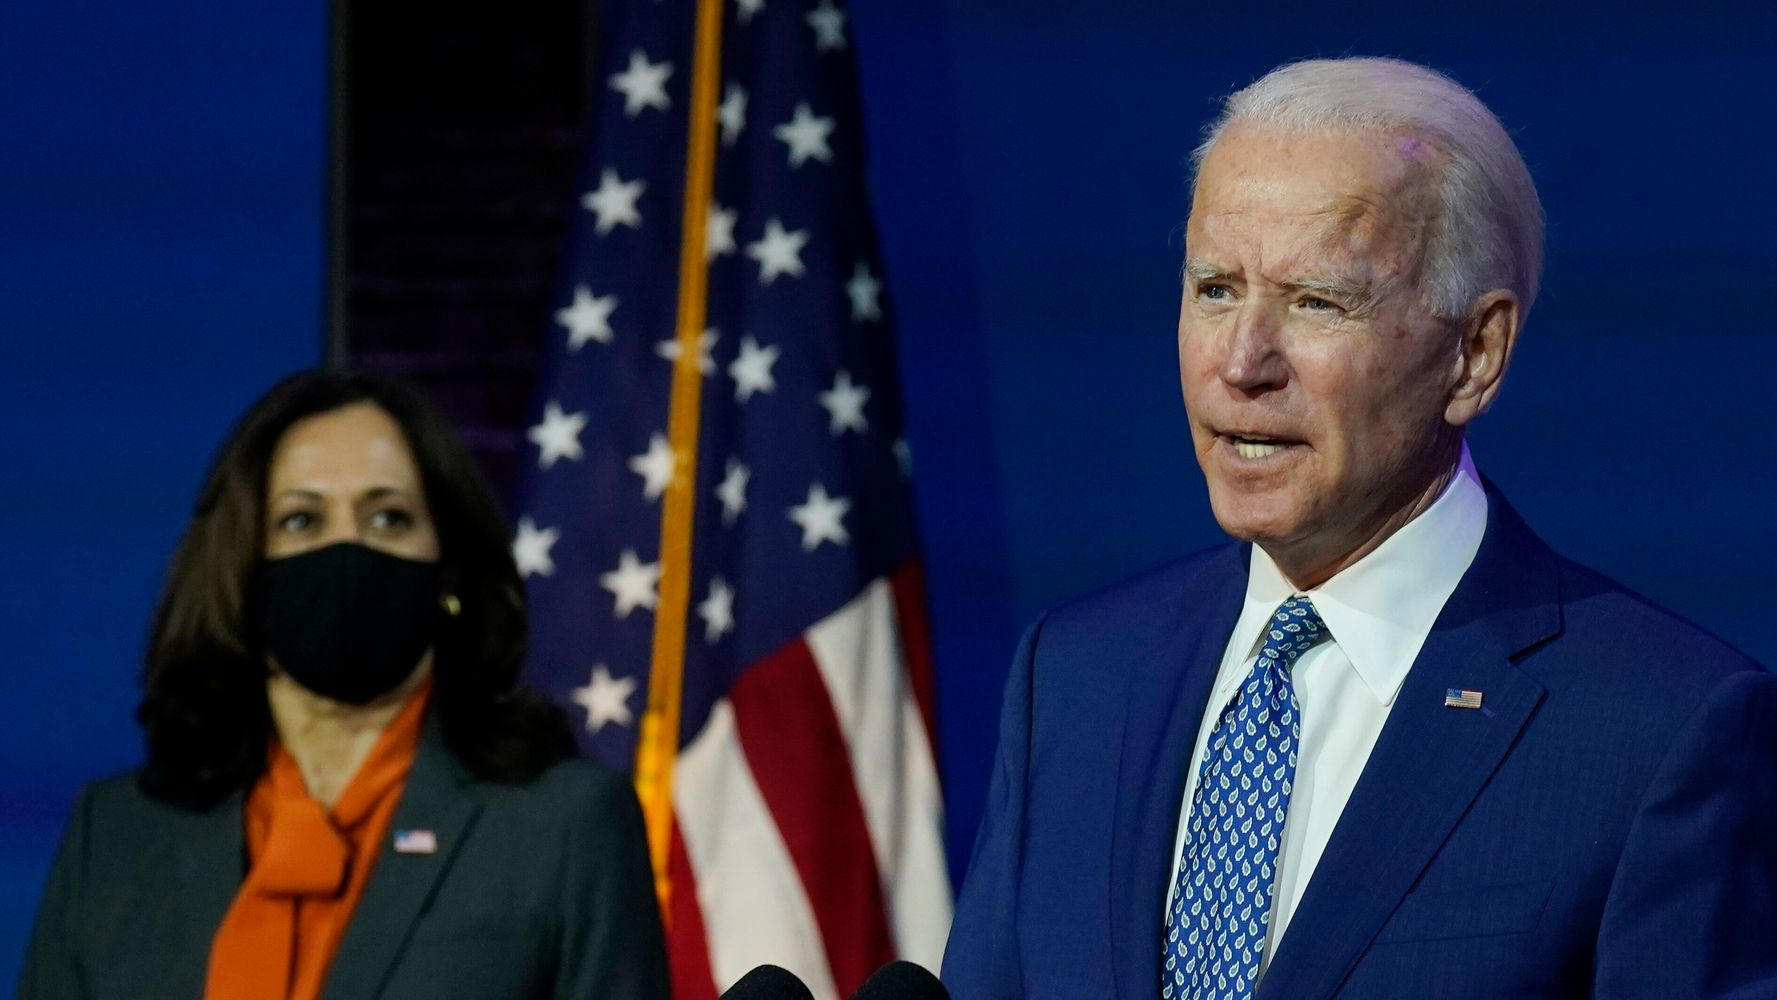 Biden Transition Team Starts Reviewing Judicial Nominees